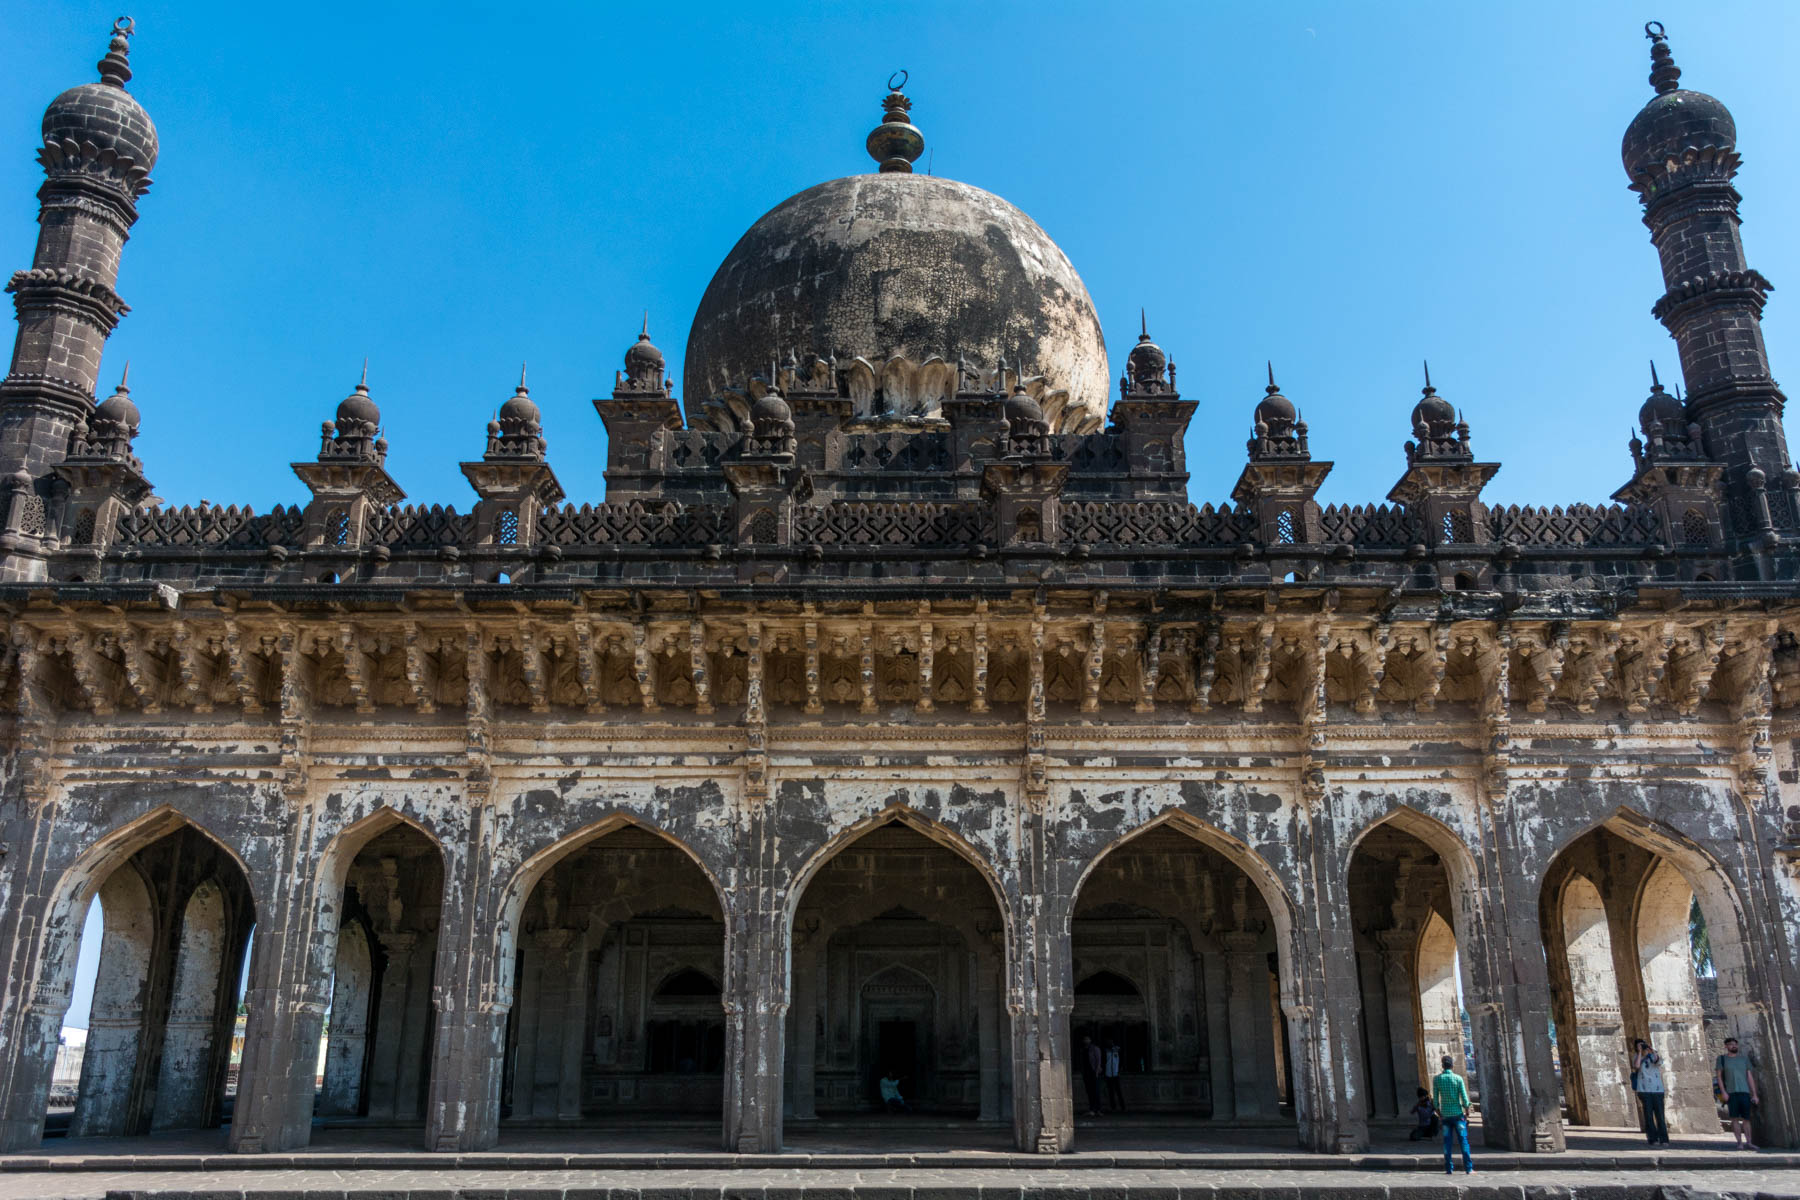 Off the beaten track places to visit in Karnataka, India - A tomb at Ibrahim Rauza in Bijapur, India - Lost With Purpose